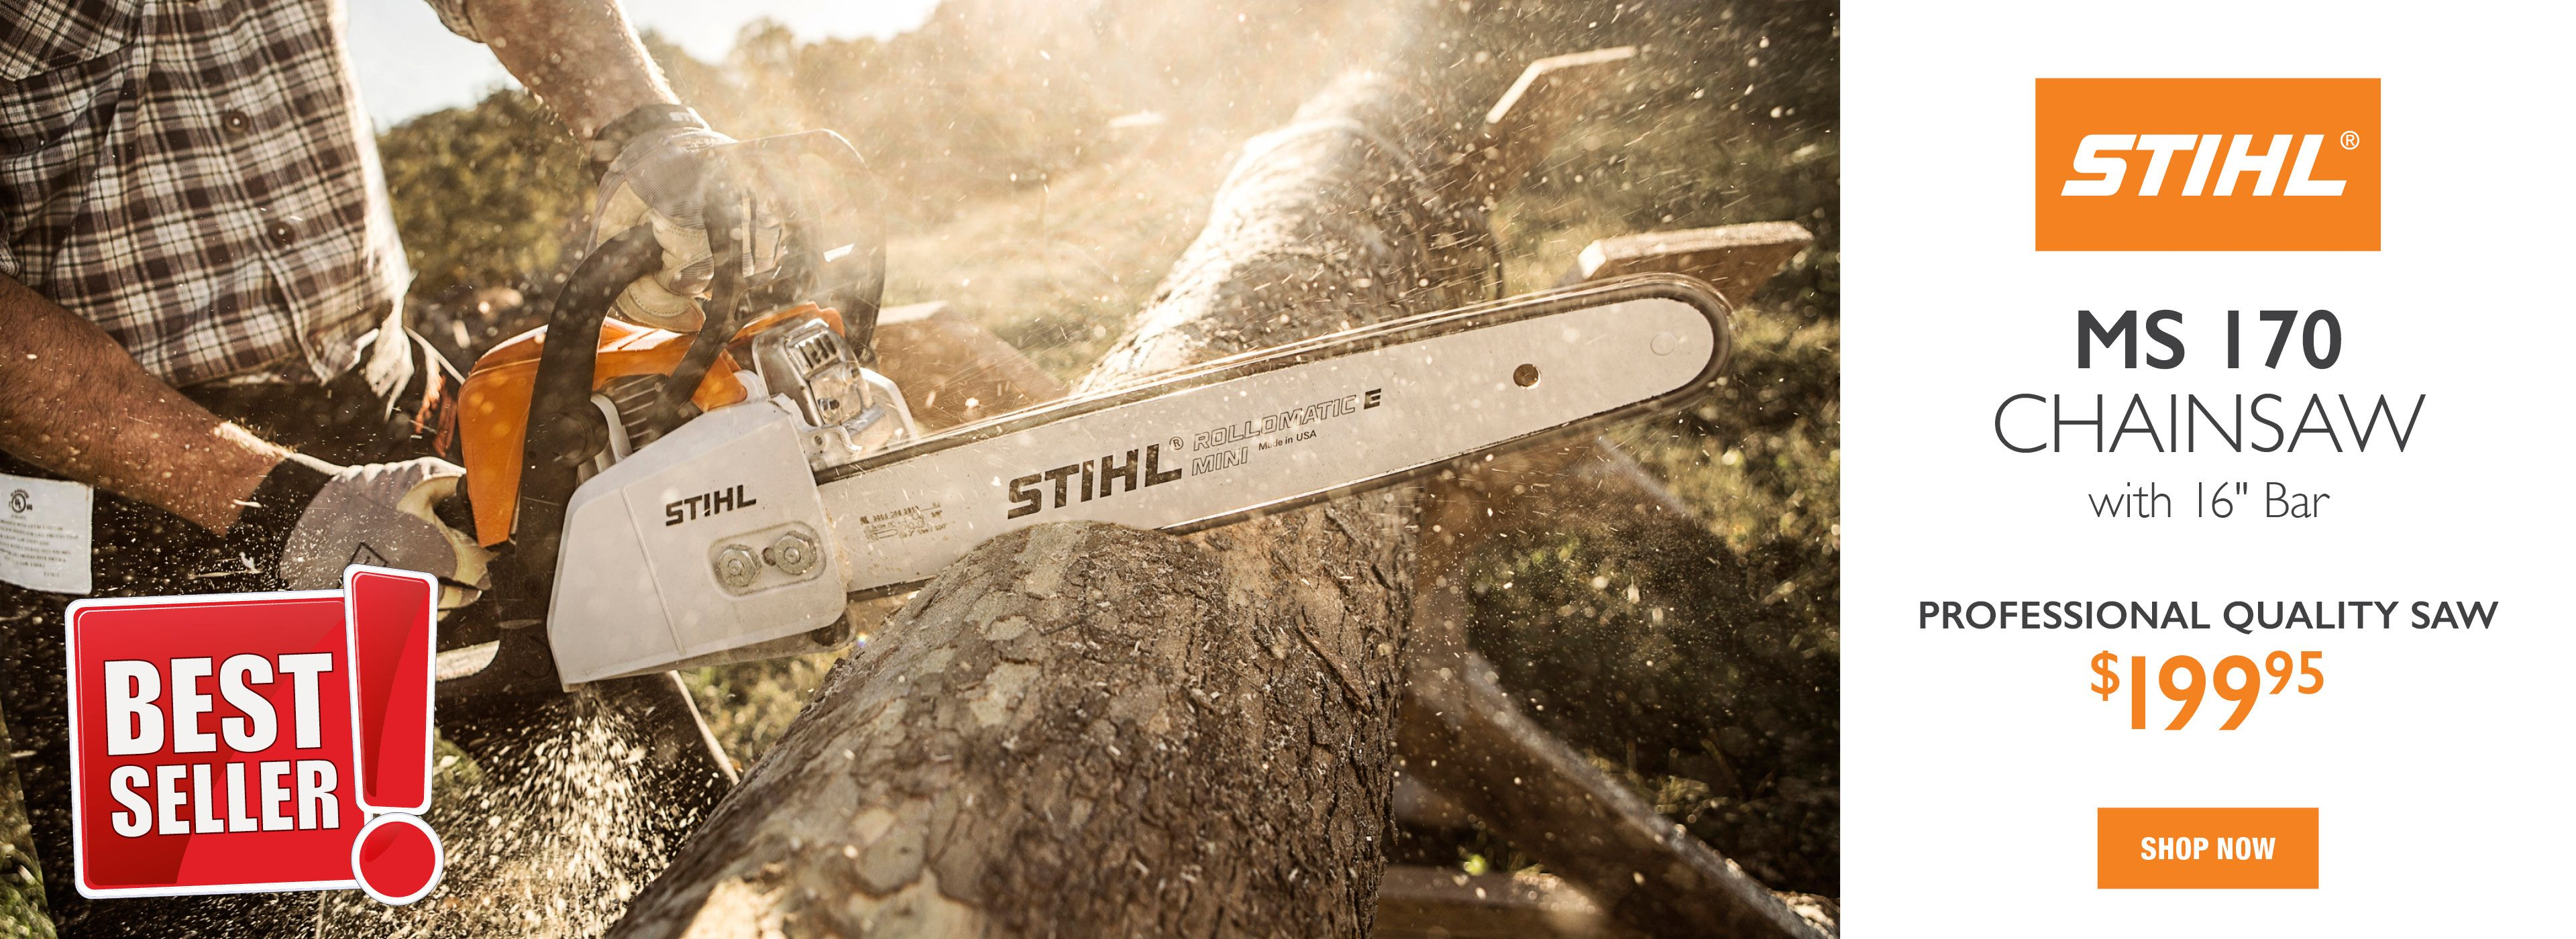 Best Seller STIHL MS 170 Chainsaw